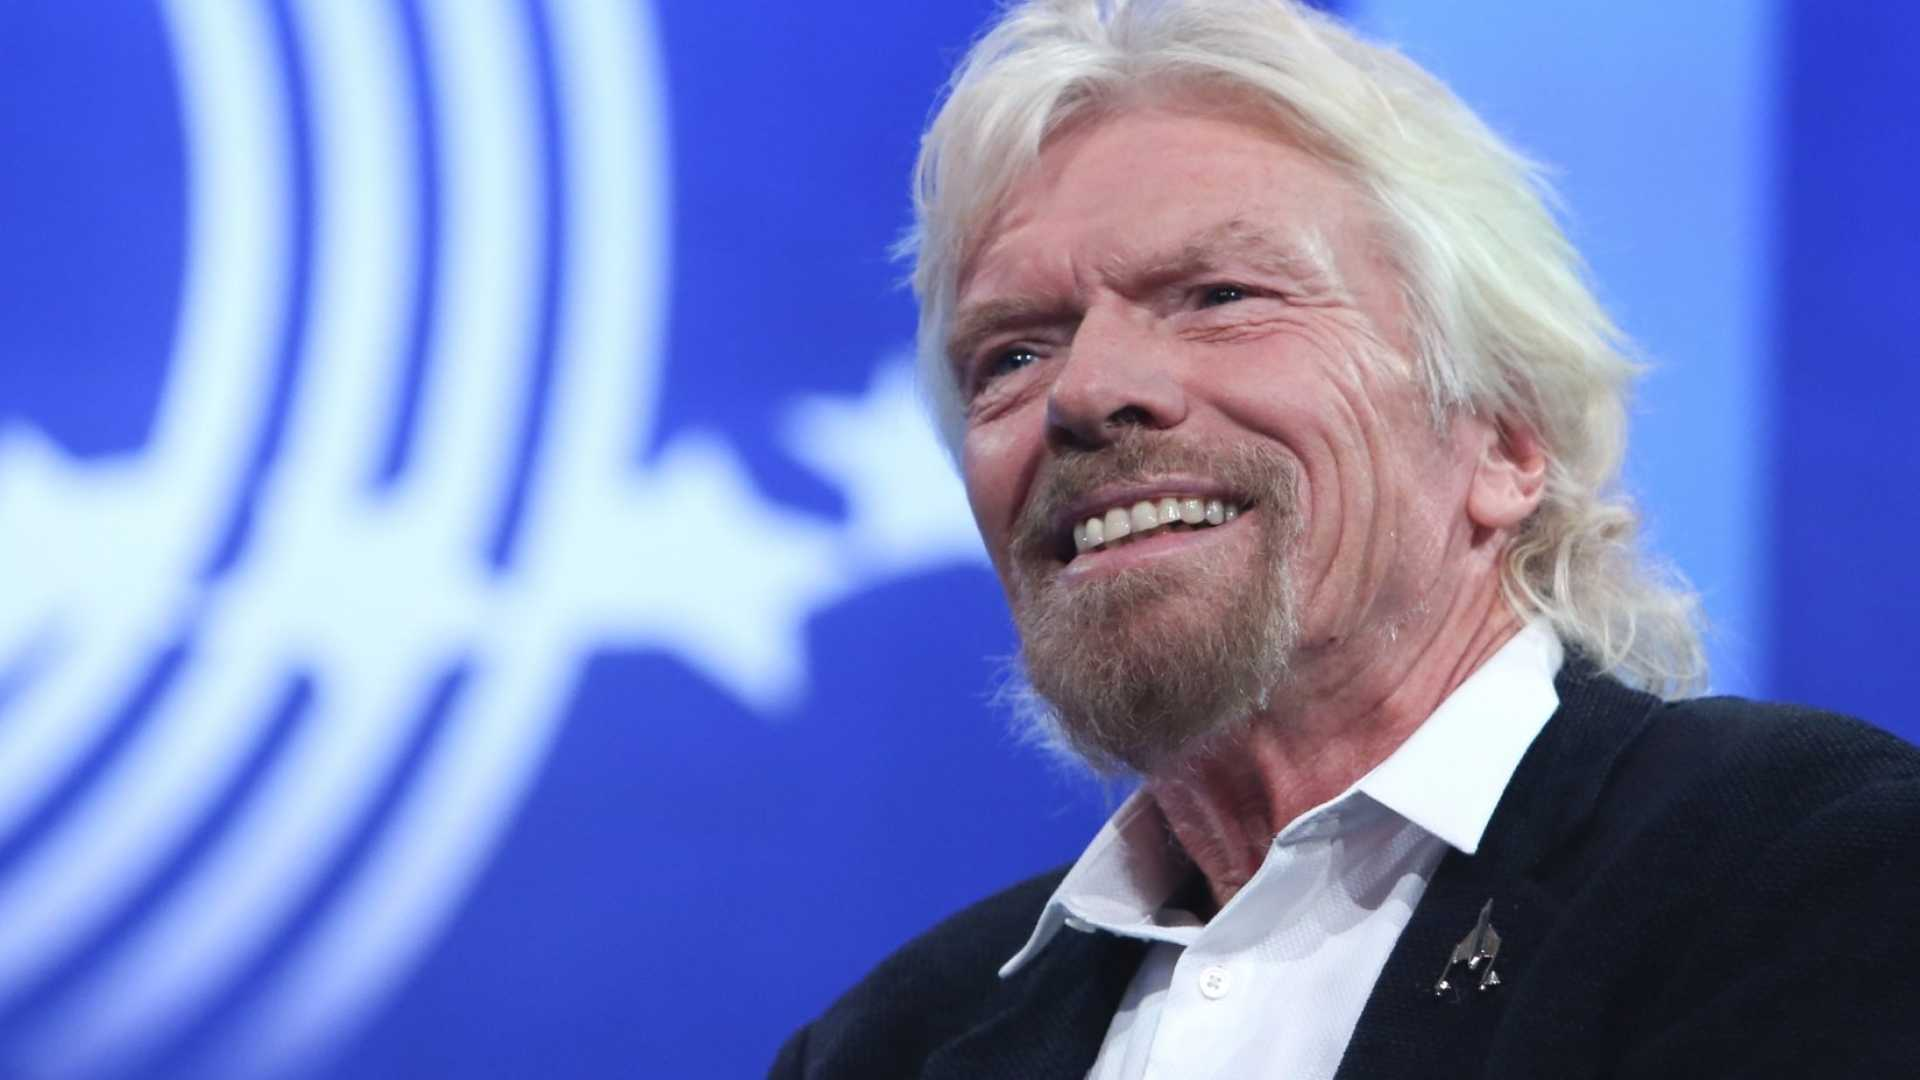 Richard Branson on Why He Rarely Says No